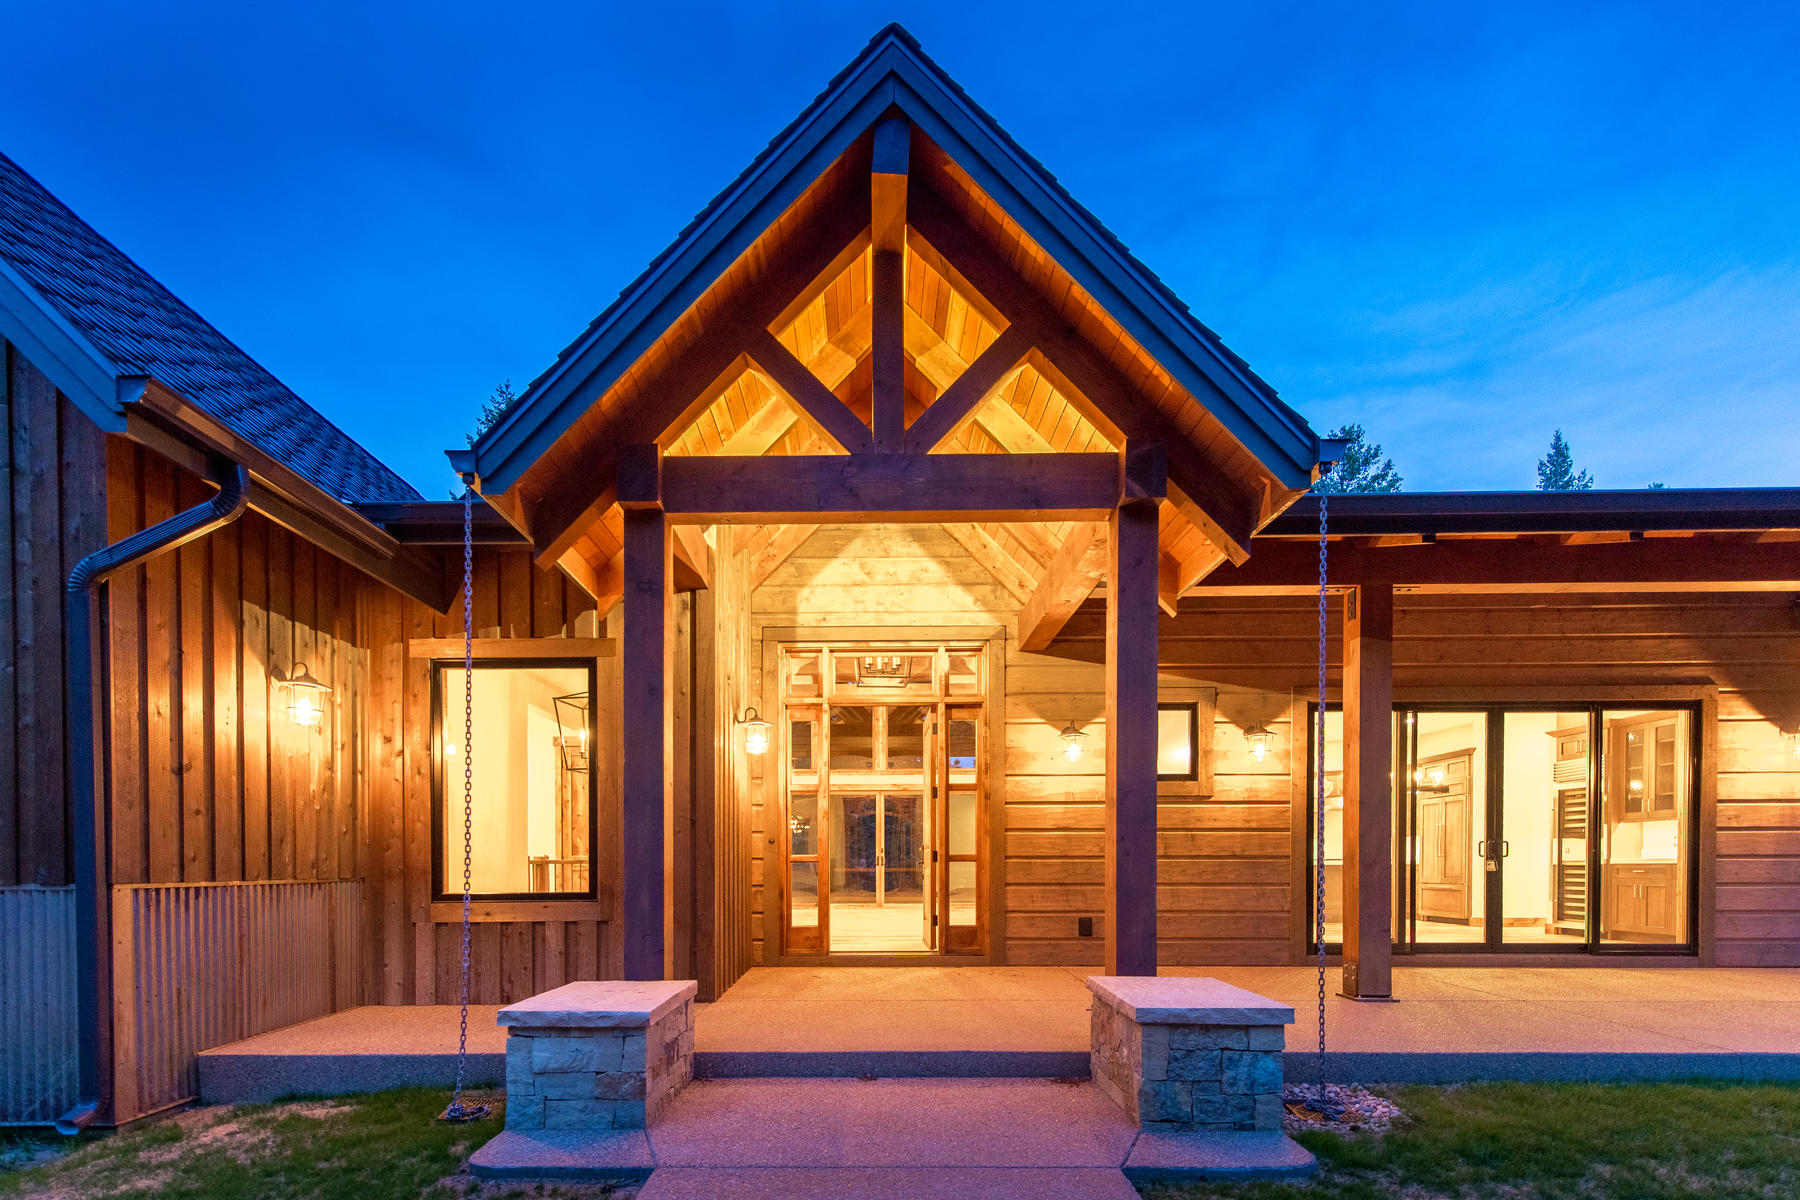 Single Family Home for Active at Rare New Construction Affords the Ultimate in Colorado Living 6383 Little Cub Creek Road Evergreen, Colorado 80439 United States